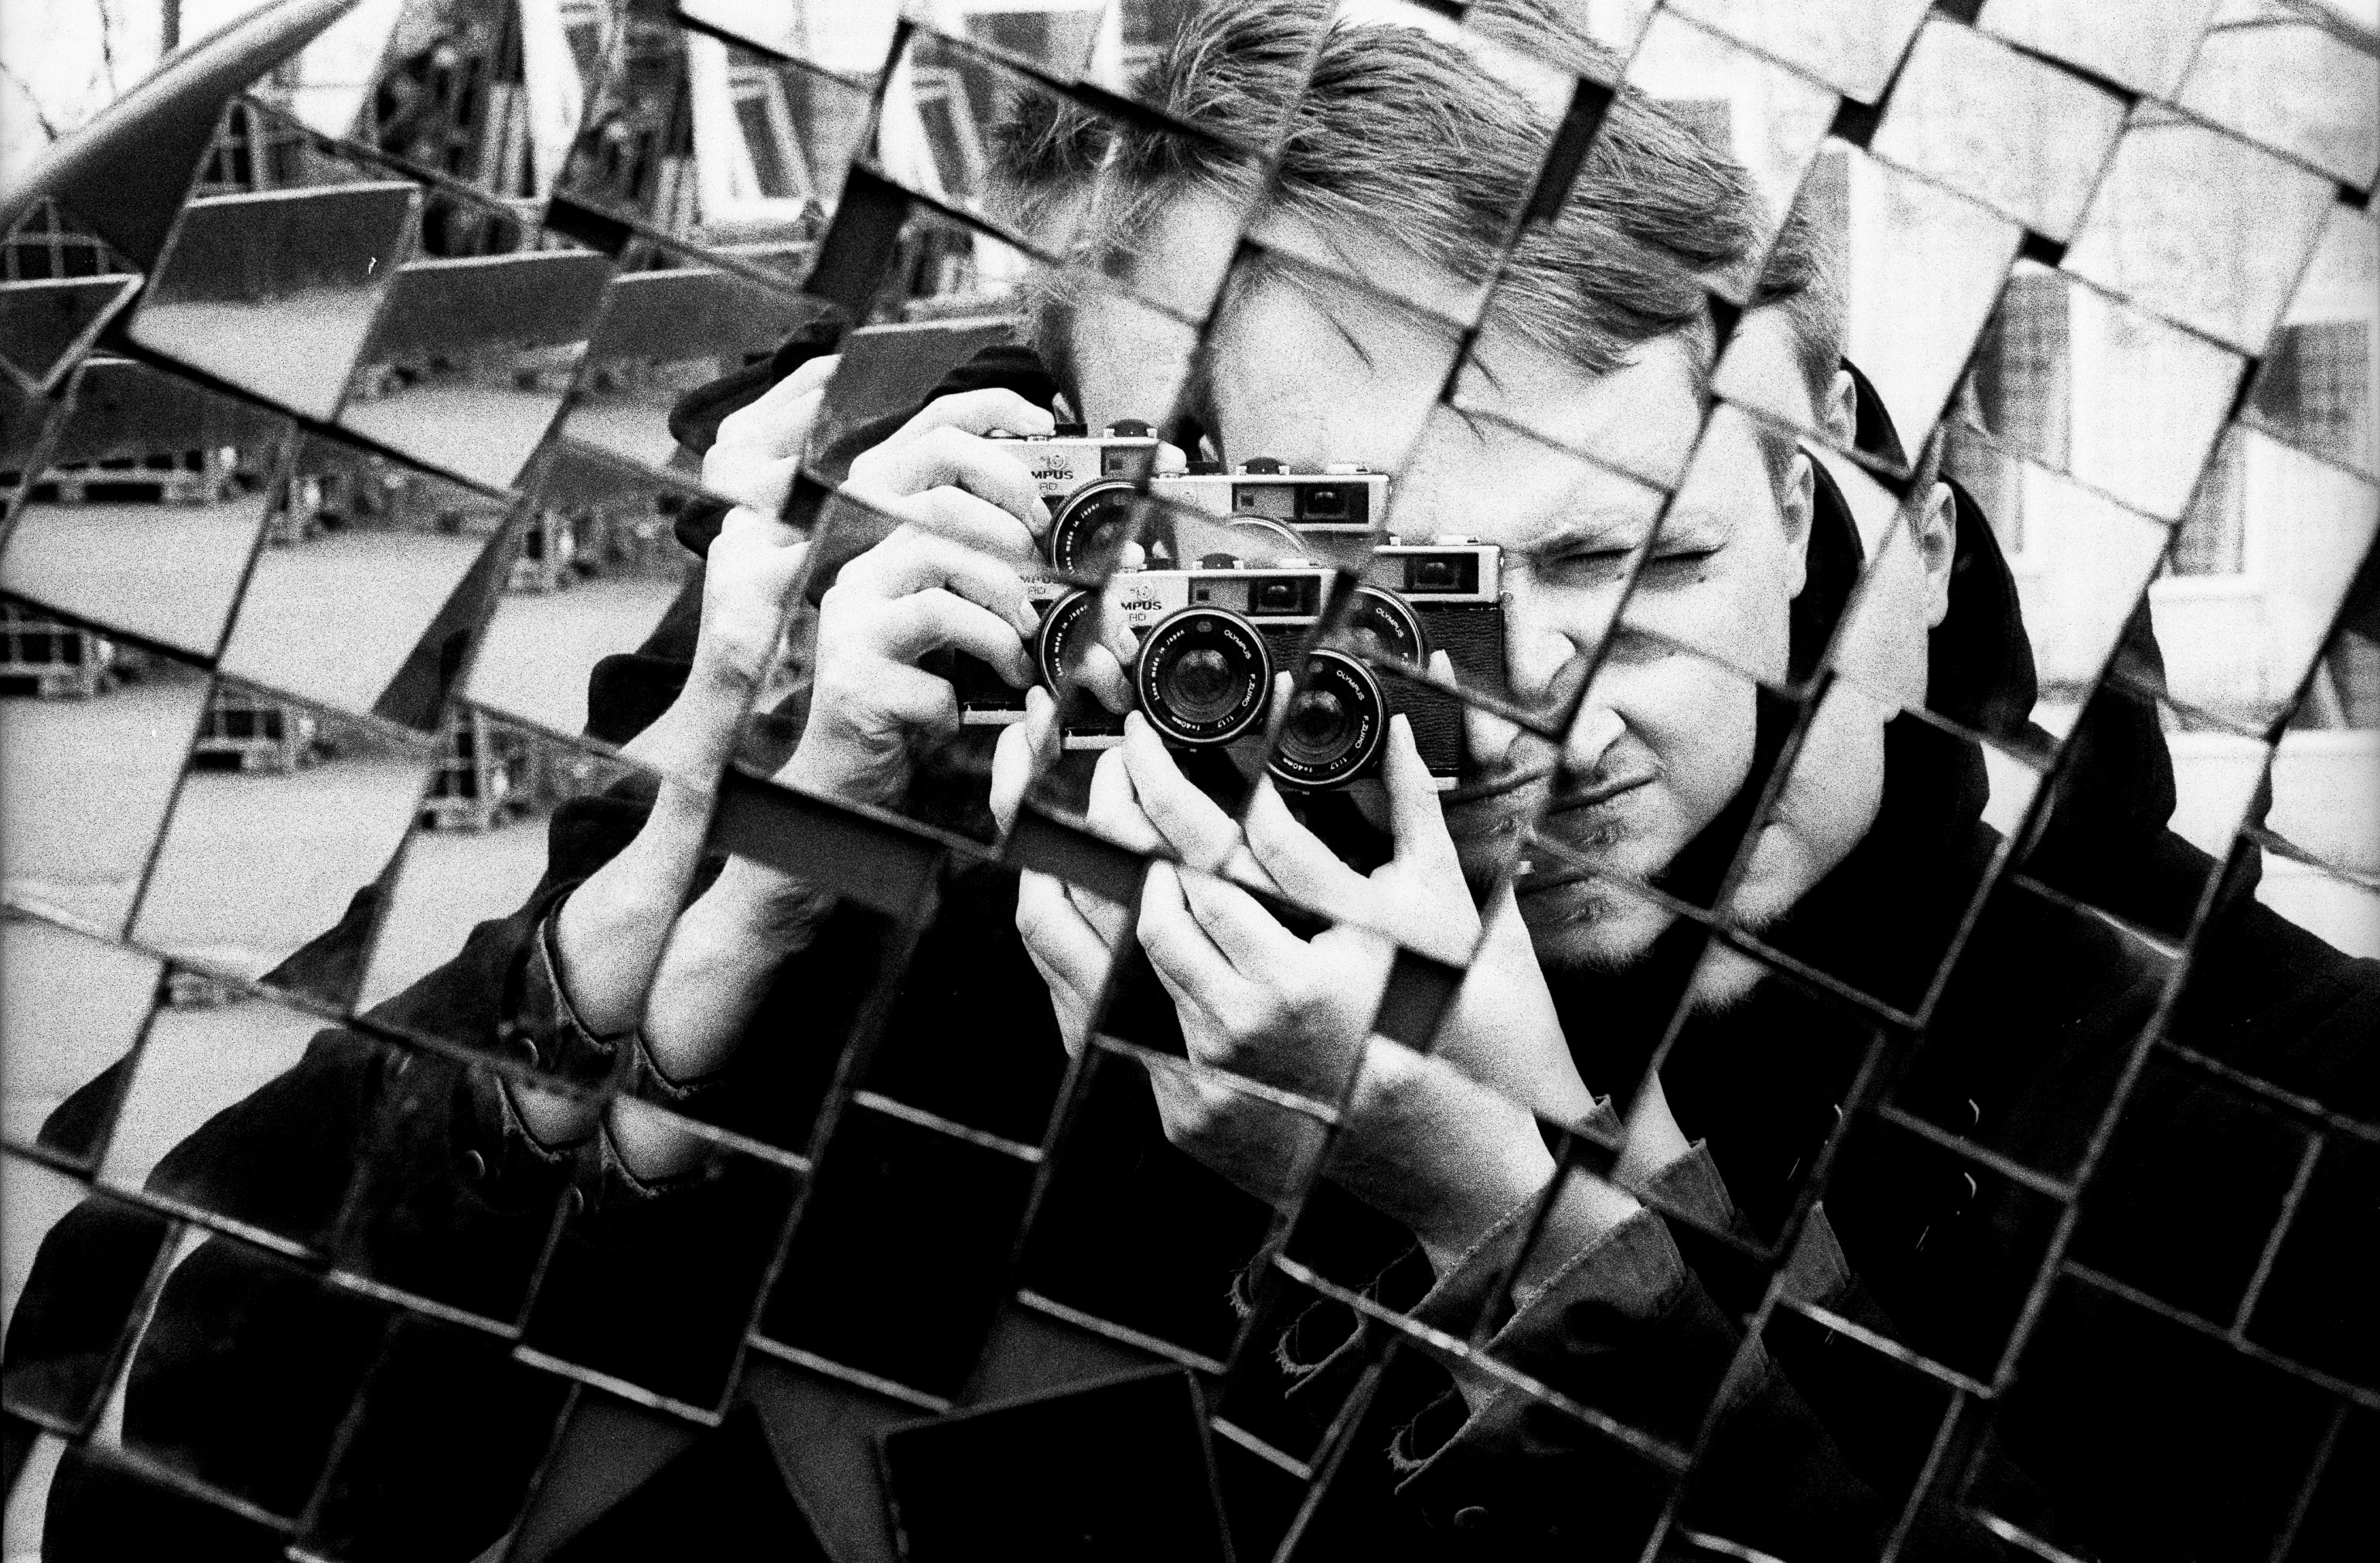 Black and white shot of man's reflection holding camera taking photo in textured mirror, Teufelsberg